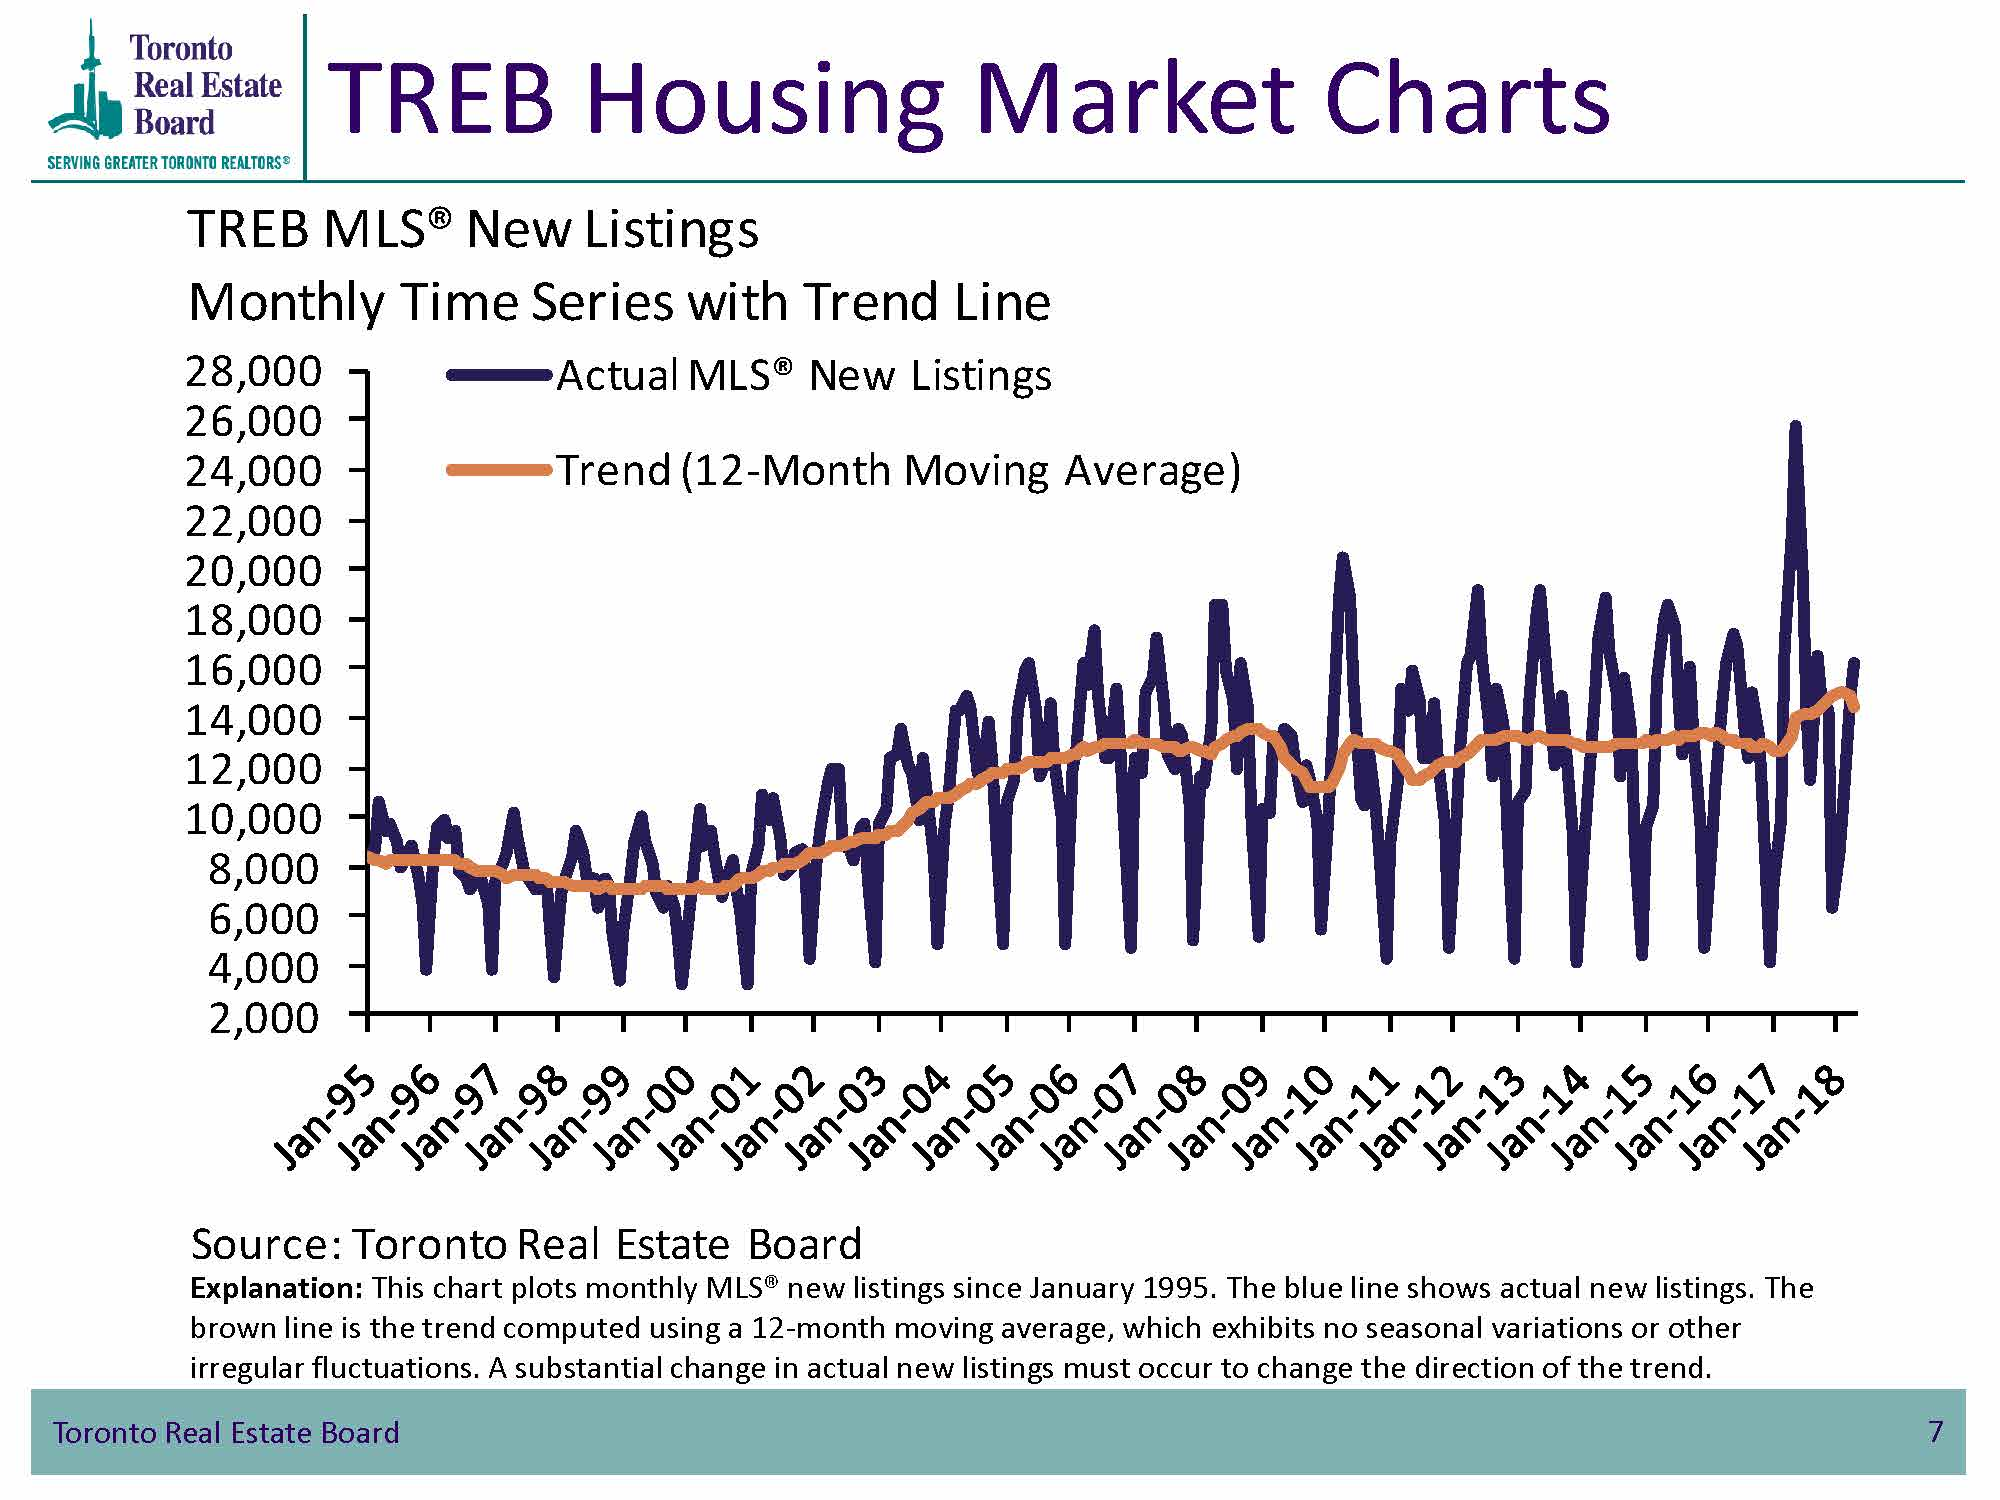 TREB Housing Market Charts - TorontoMLS New Listings - Monthly Time Series with Trend Line